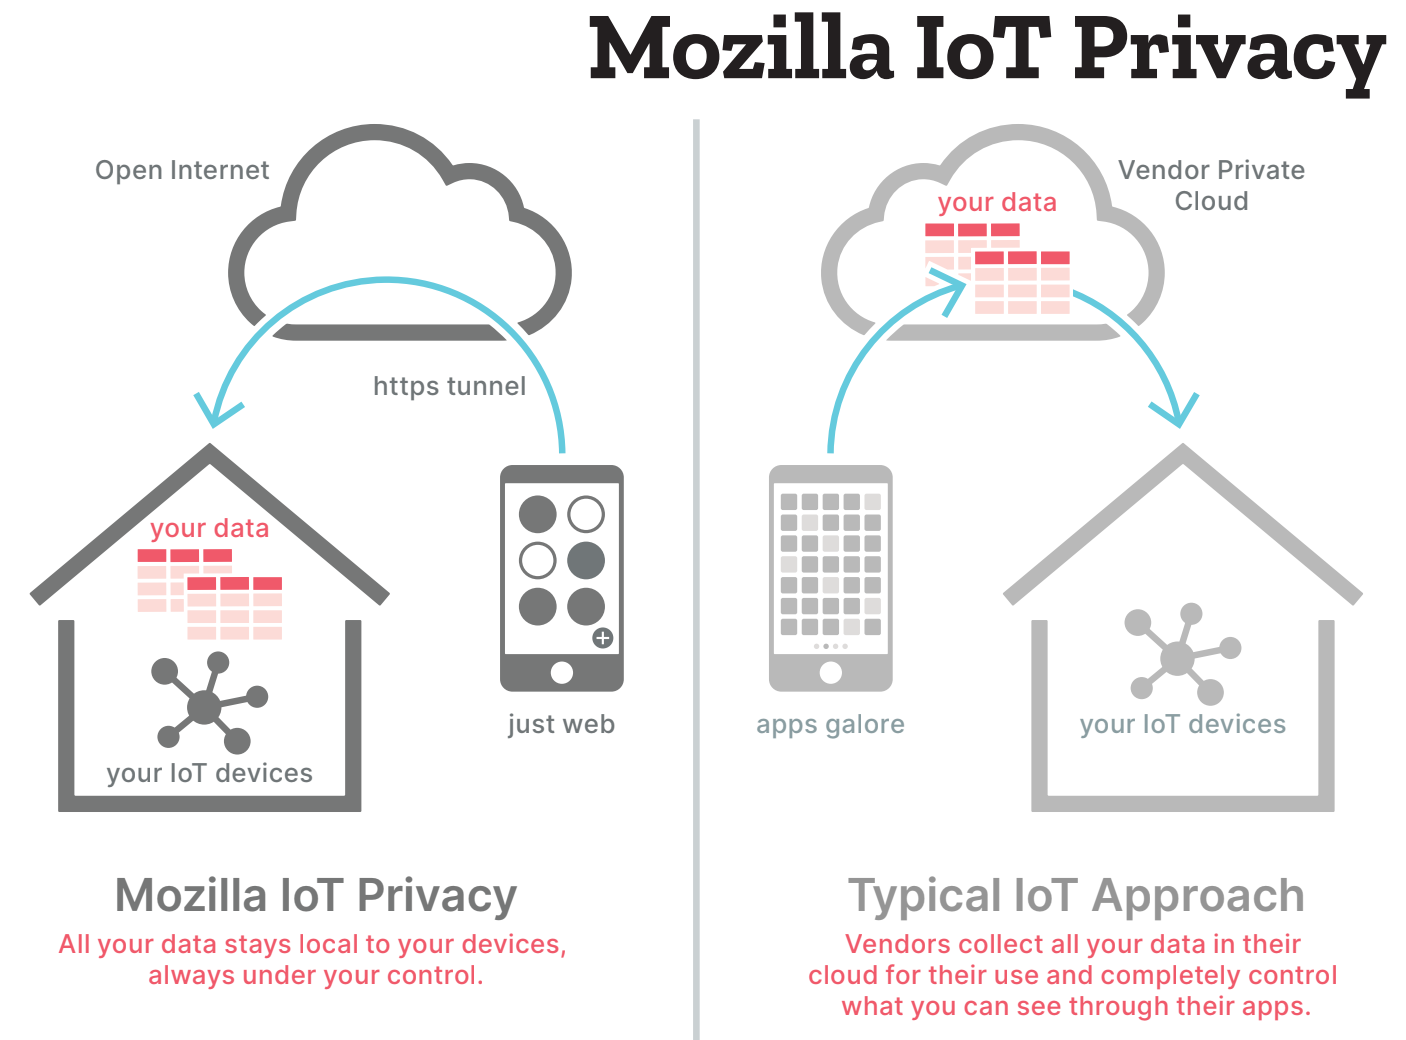 A diagram comparing the features of Mozilla IoT privacy with a more typical cloud-based IoT approach